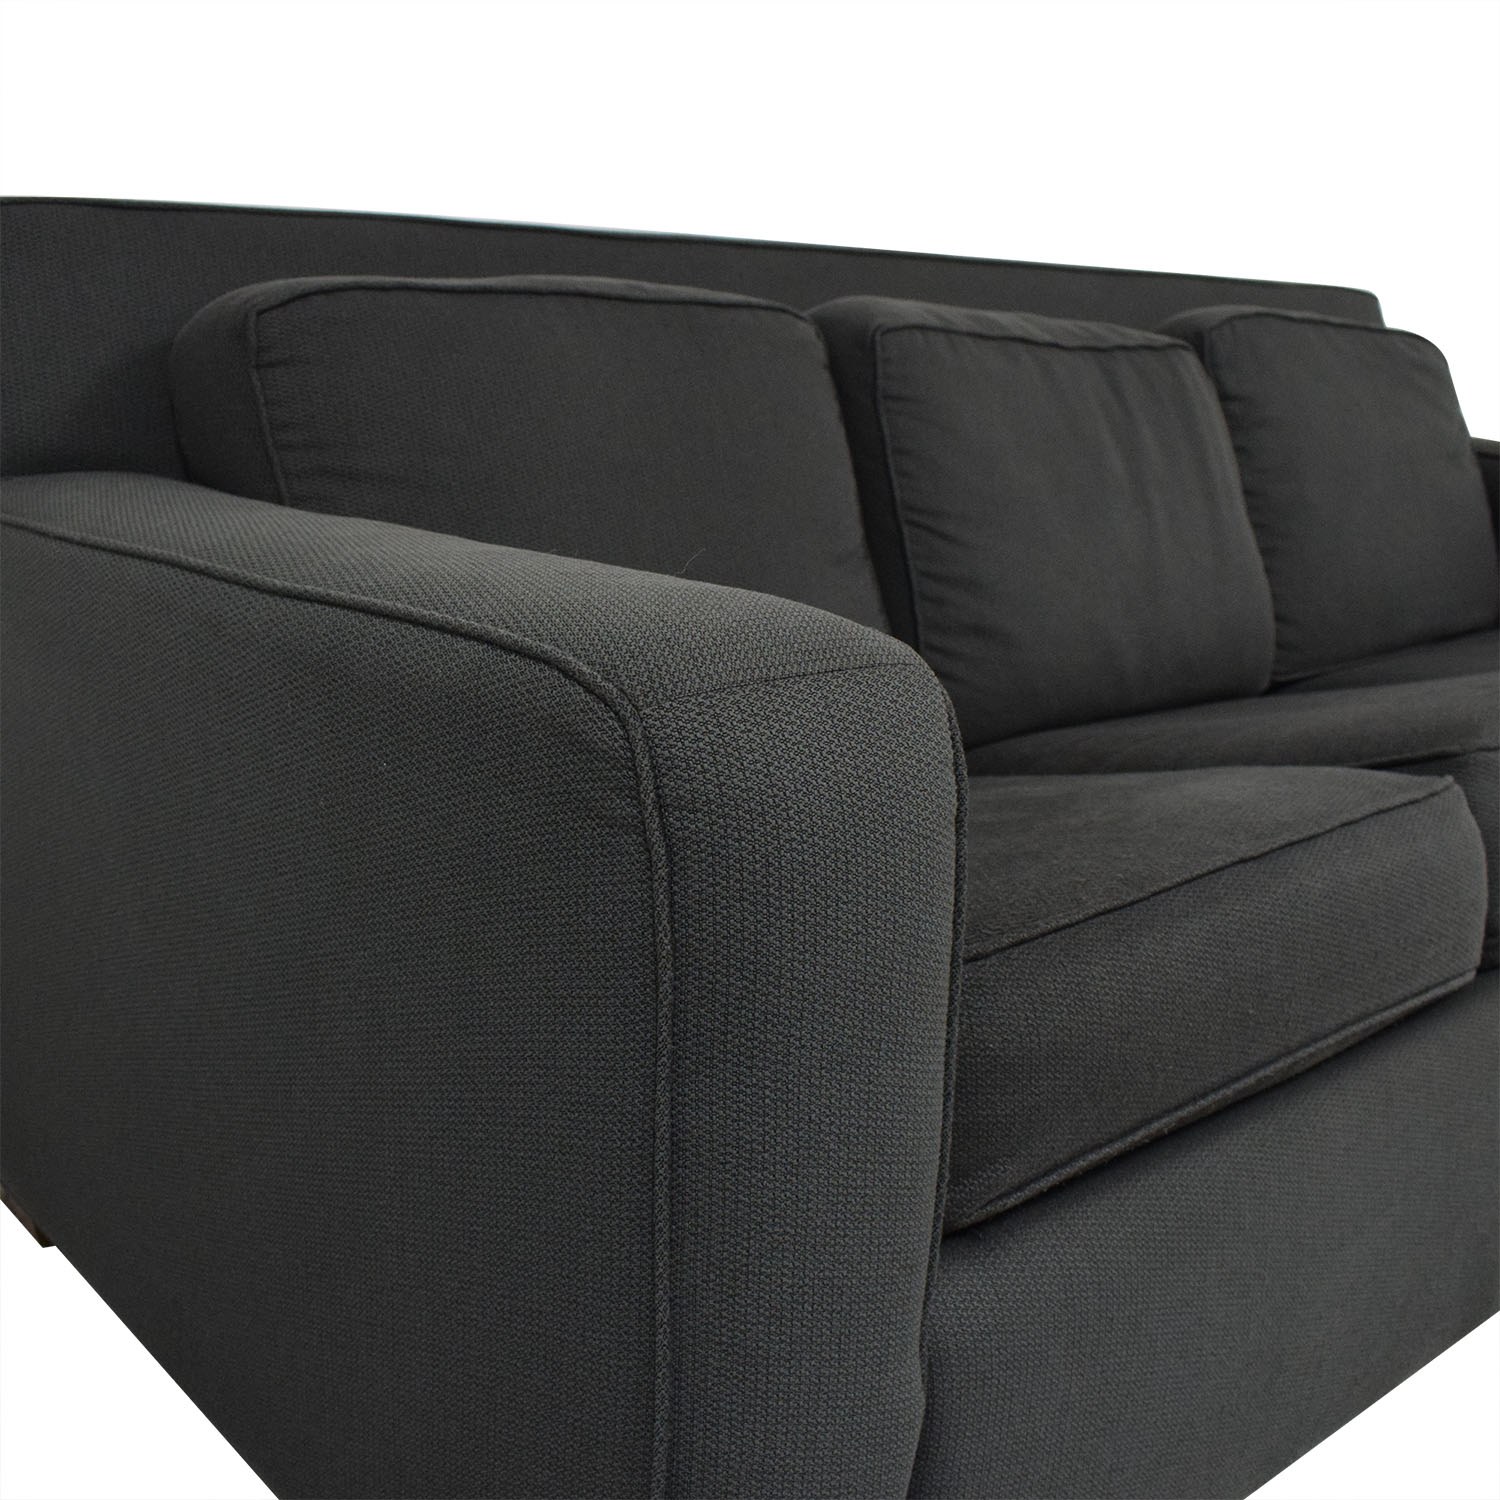 Younger Furniture Younger Furniture Sleeper Sofa price